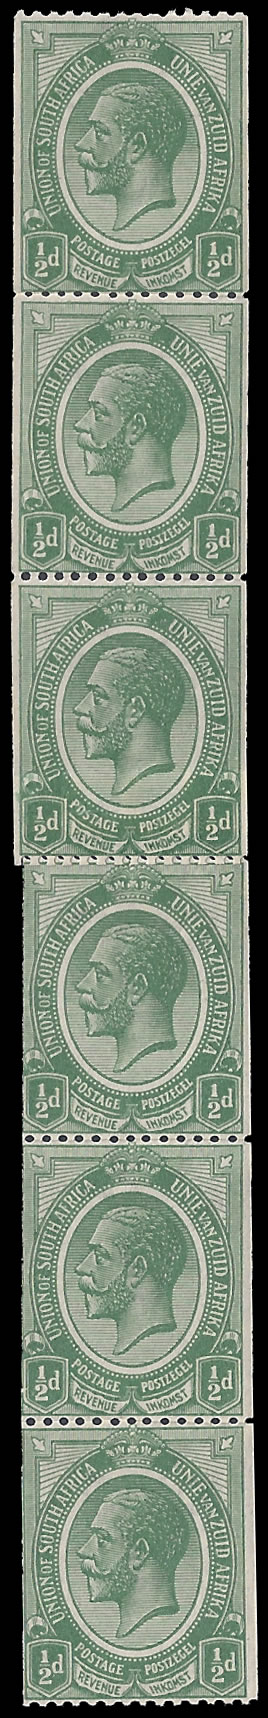 SOUTH AFRICA 1913 KGV ½D COILS WITH JOIN